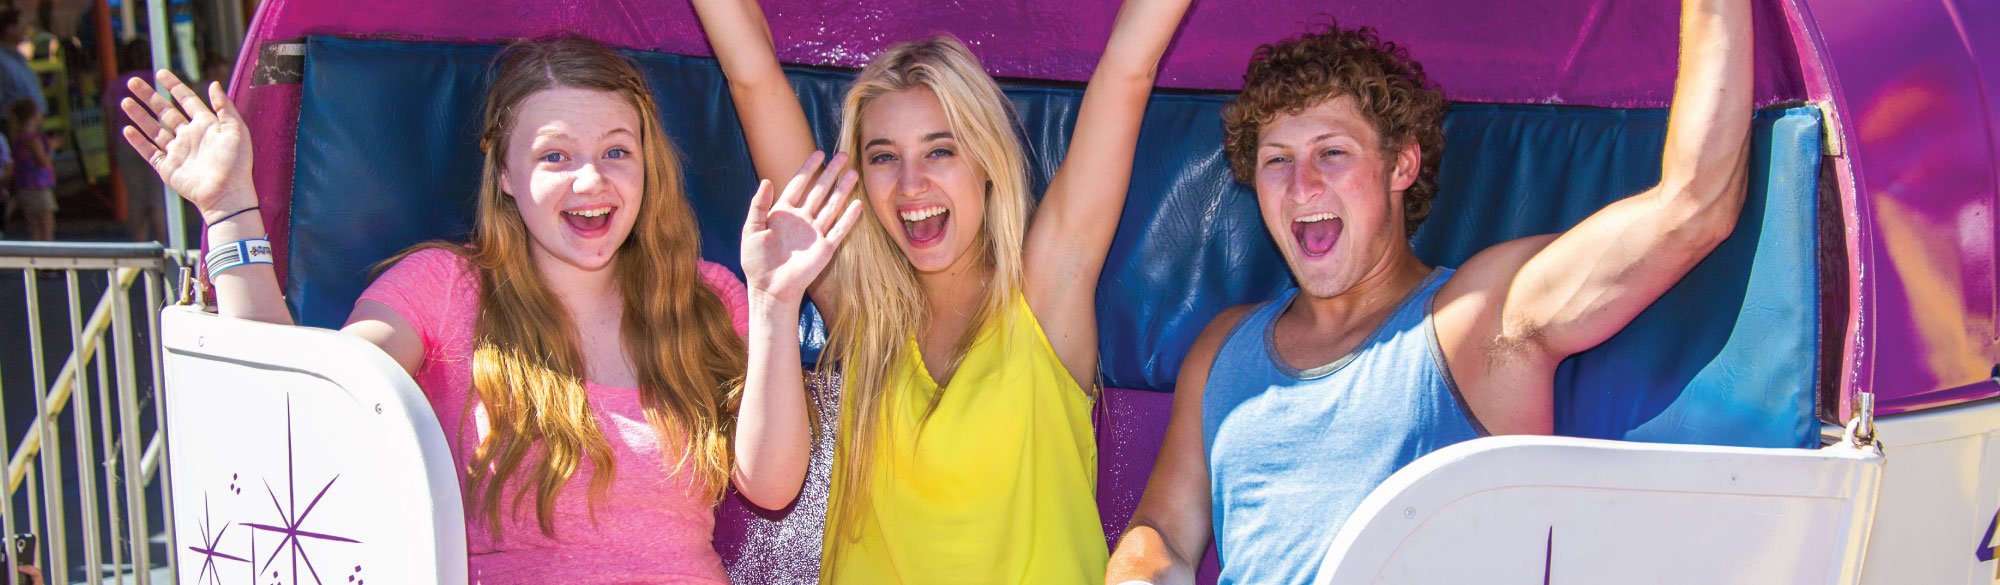 Teens on ride